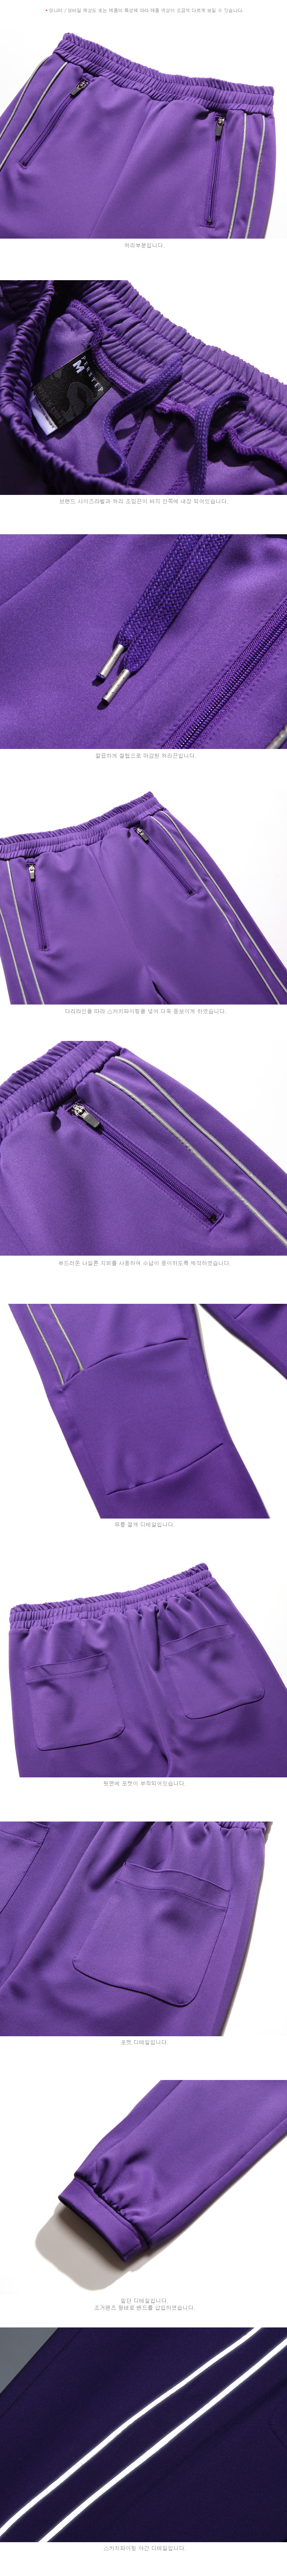 20180509_ps_saint_pants_purple_ms_02.jpg